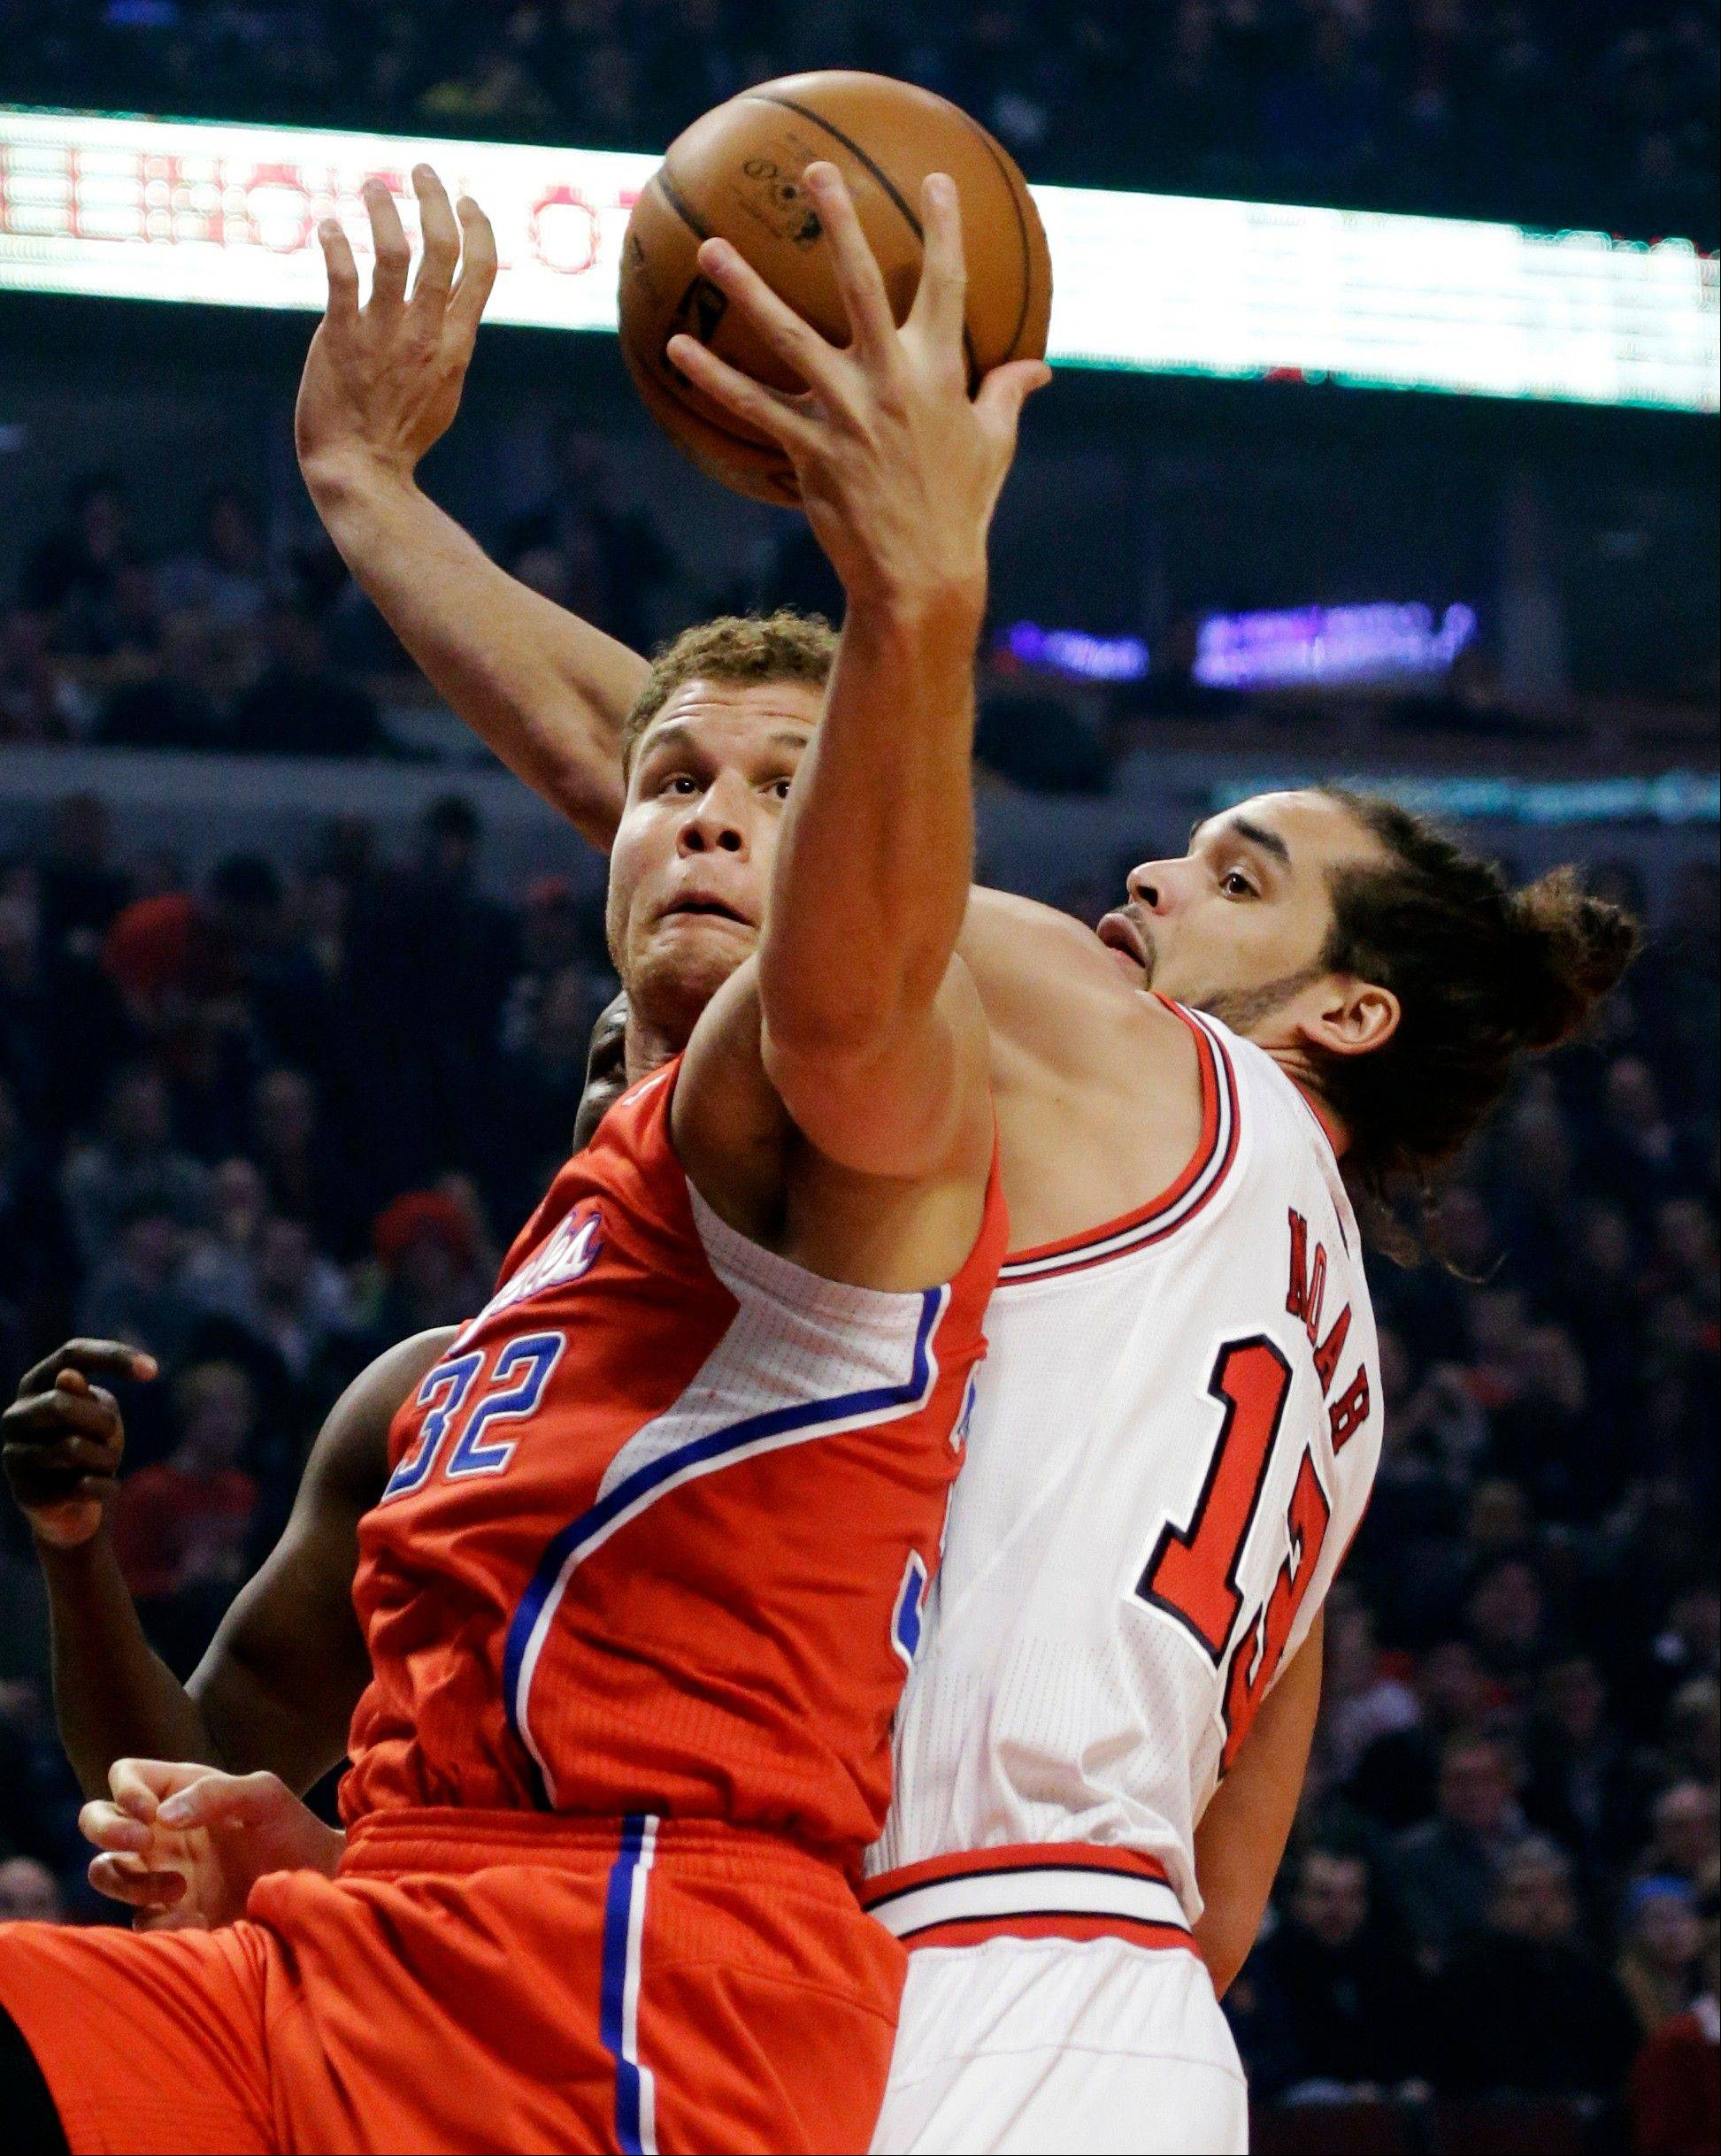 Los Angeles Clippers forward Blake Griffin grabs a rebound over Bulls center Joakim Noah Tuesday during the first half at the United Center.